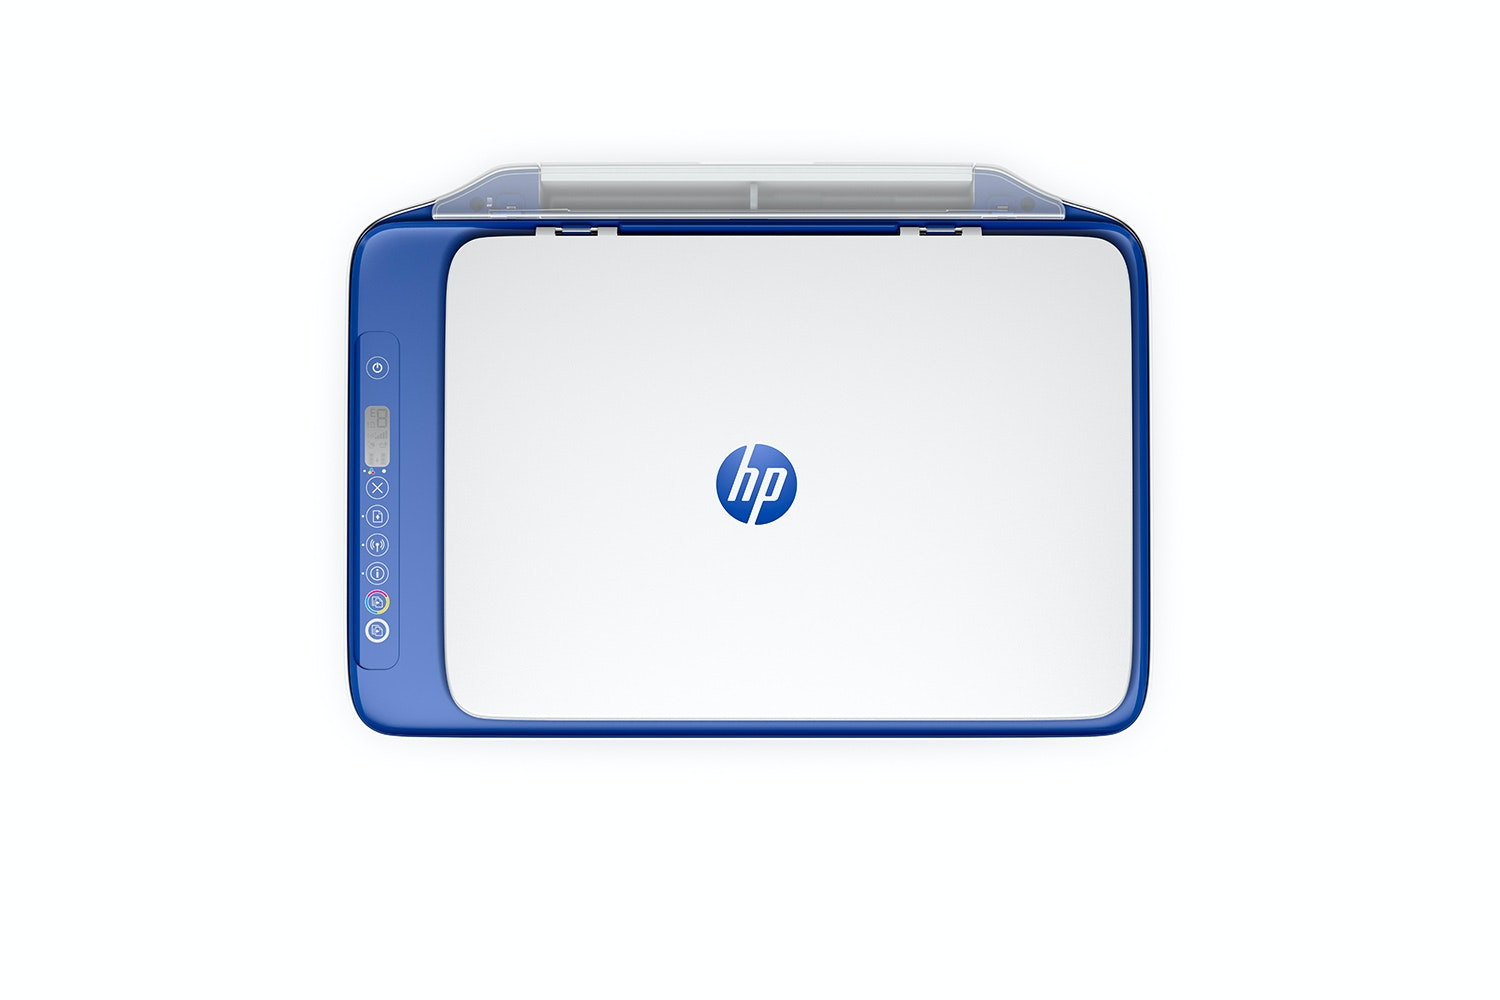 HP DeskJet 2630 Printer | Blue